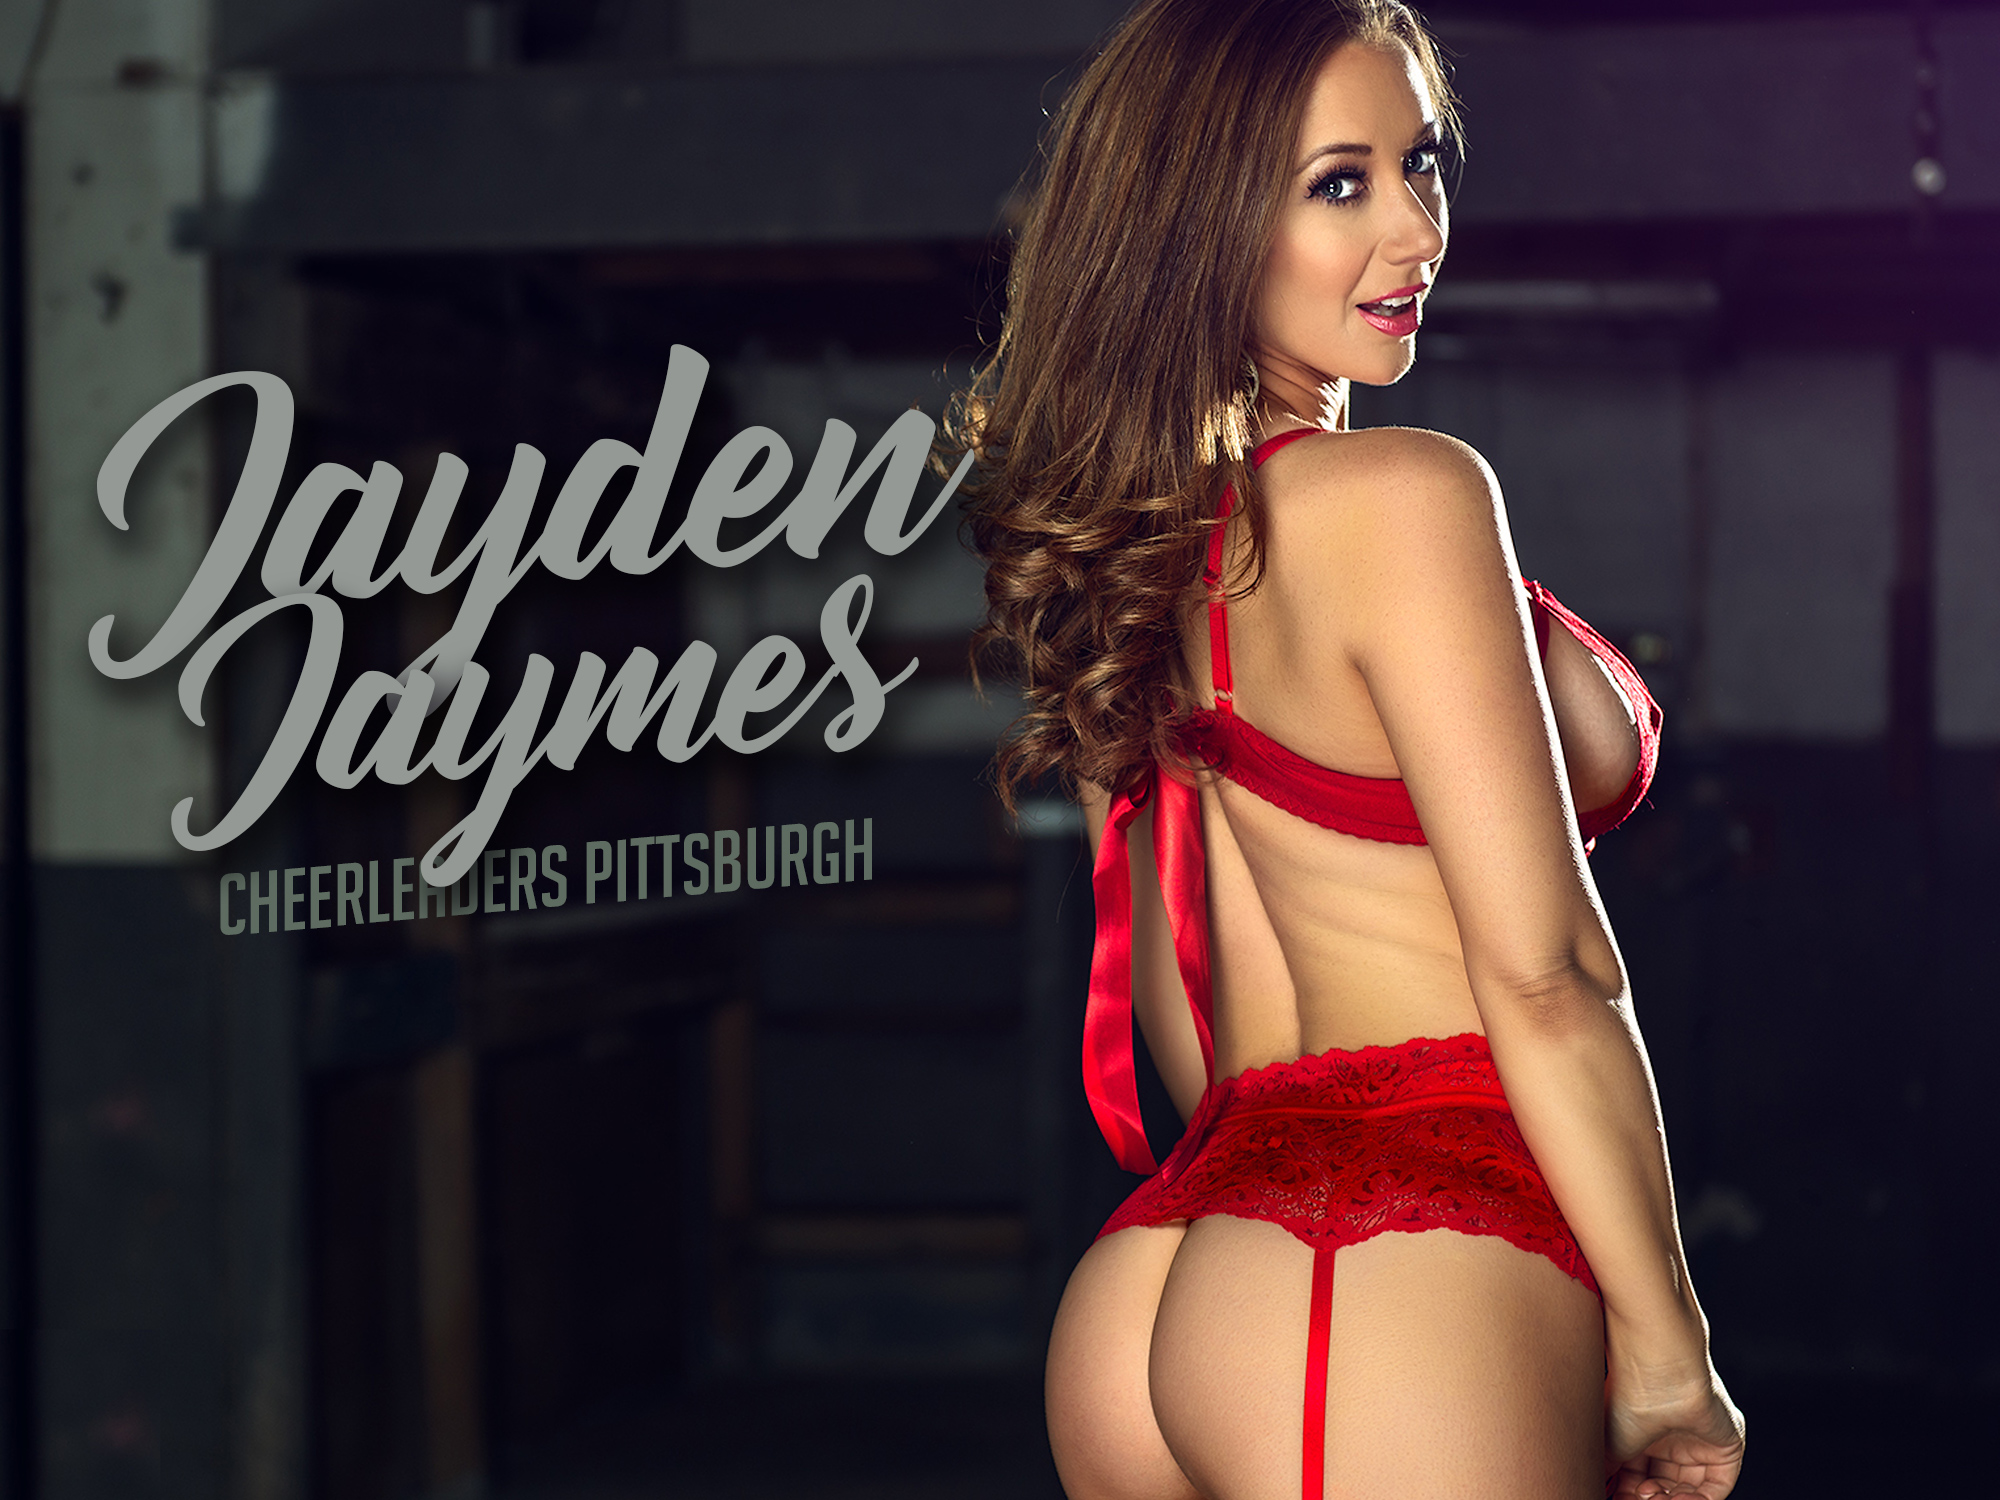 Jayden Jaymes - Cheerleaders Pittsburgh